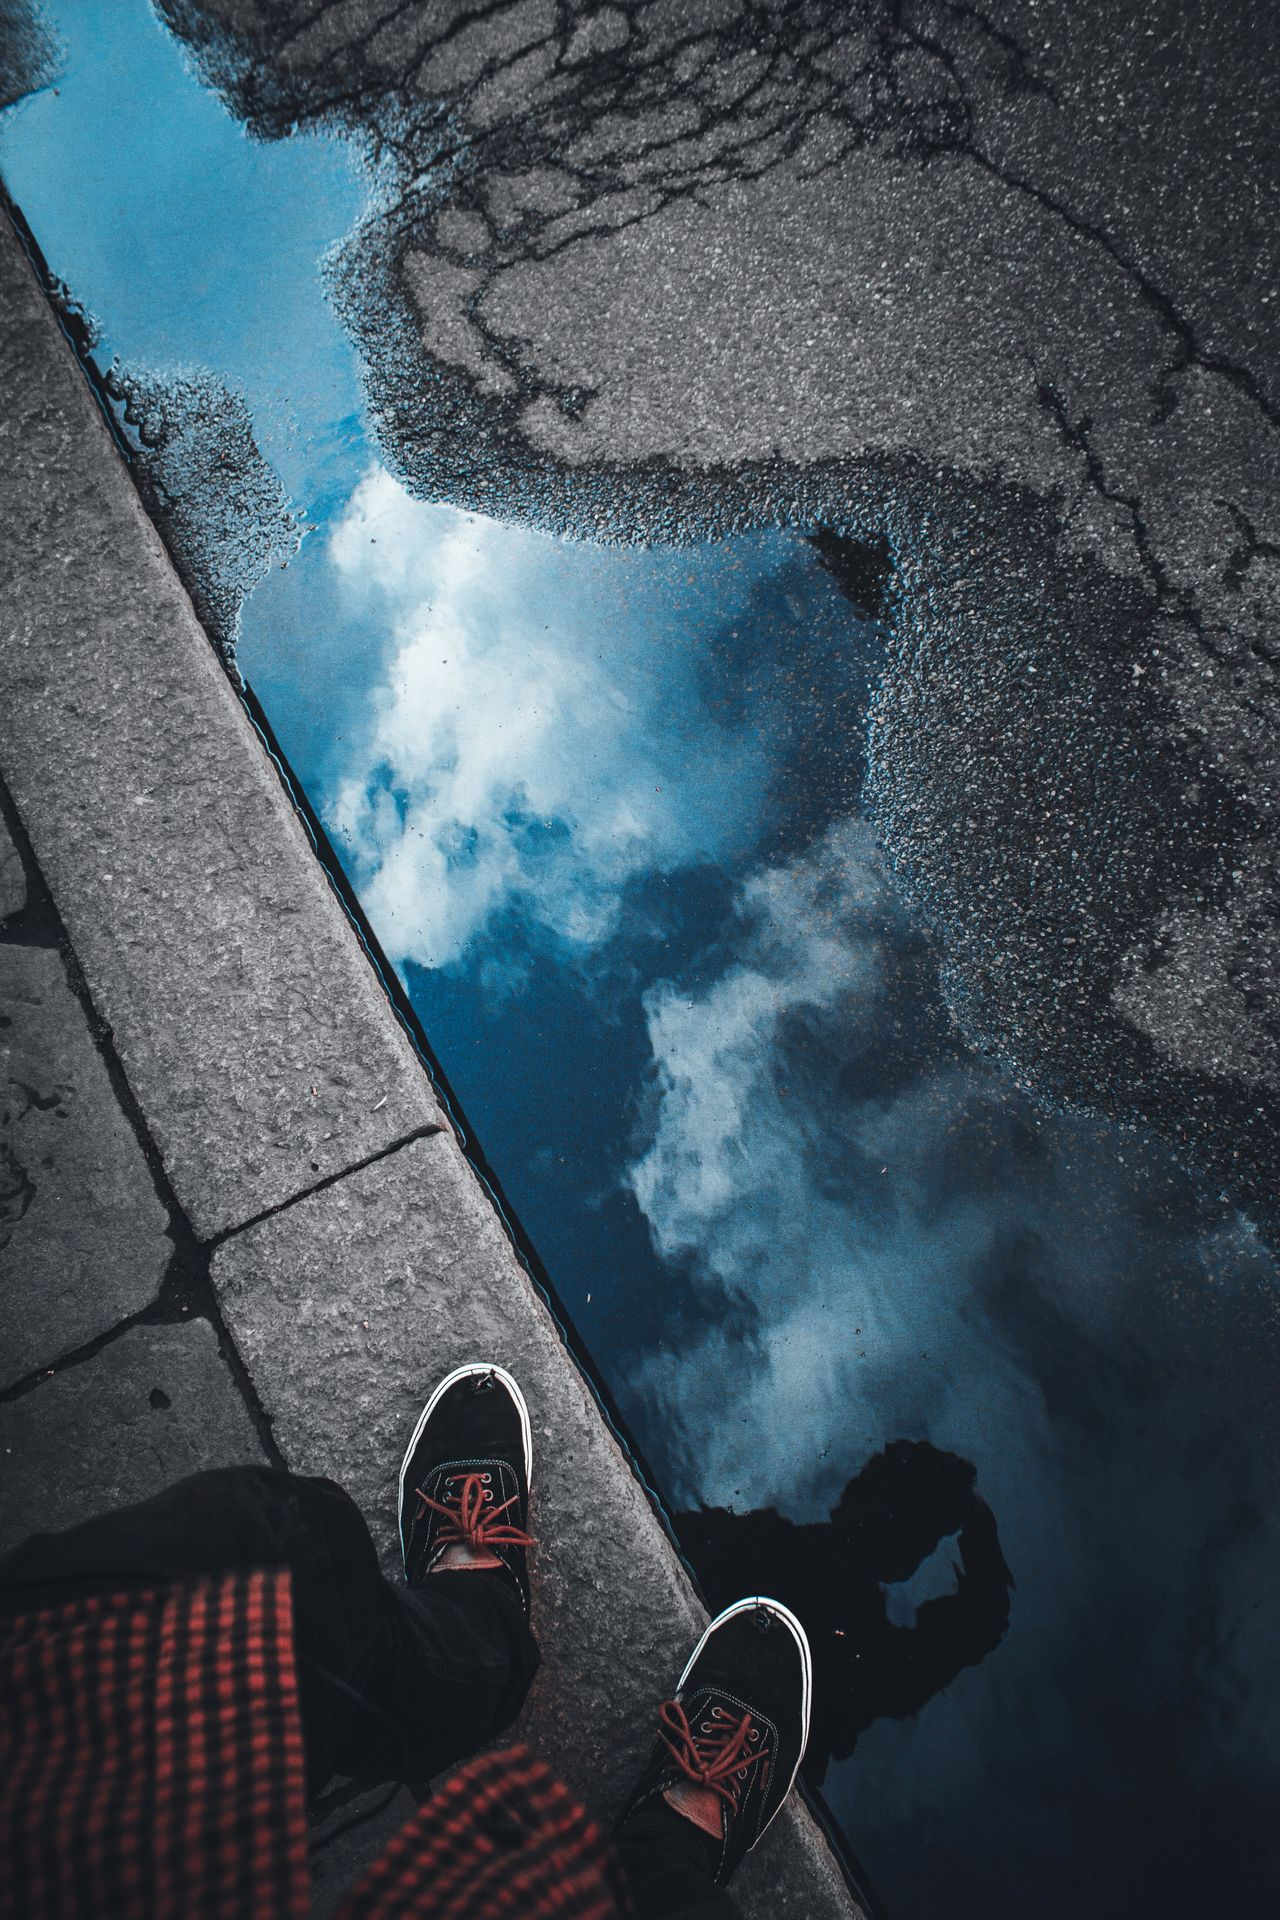 Human Leg Low Section Human Body Part One Person Personal Perspective Human Foot Shoe Water Real People Lifestyles Adult One Man Only Outdoors Day Sky Eye4photography  EyeEm EyeEm Best Shots Cloud - Sky EyeEm Gallery Colorful Tranquility Reflection The Street Photographer - 2017 EyeEm Awards